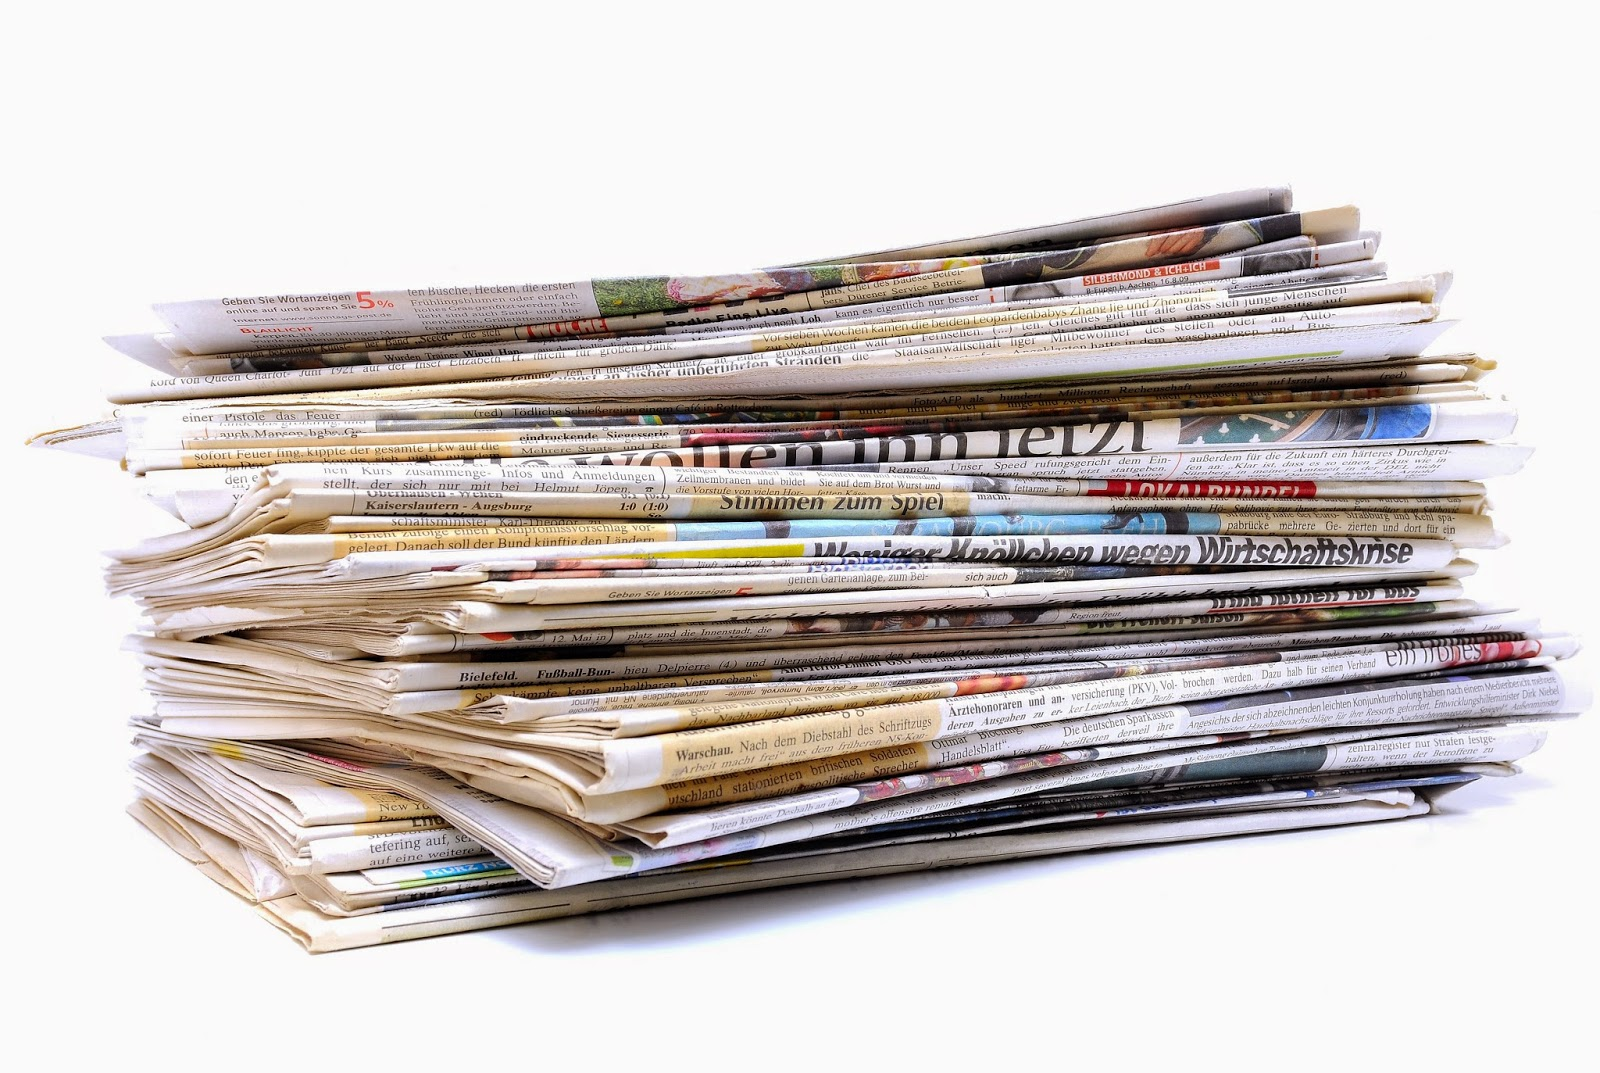 PressMagMedia - Print sales lose £1million